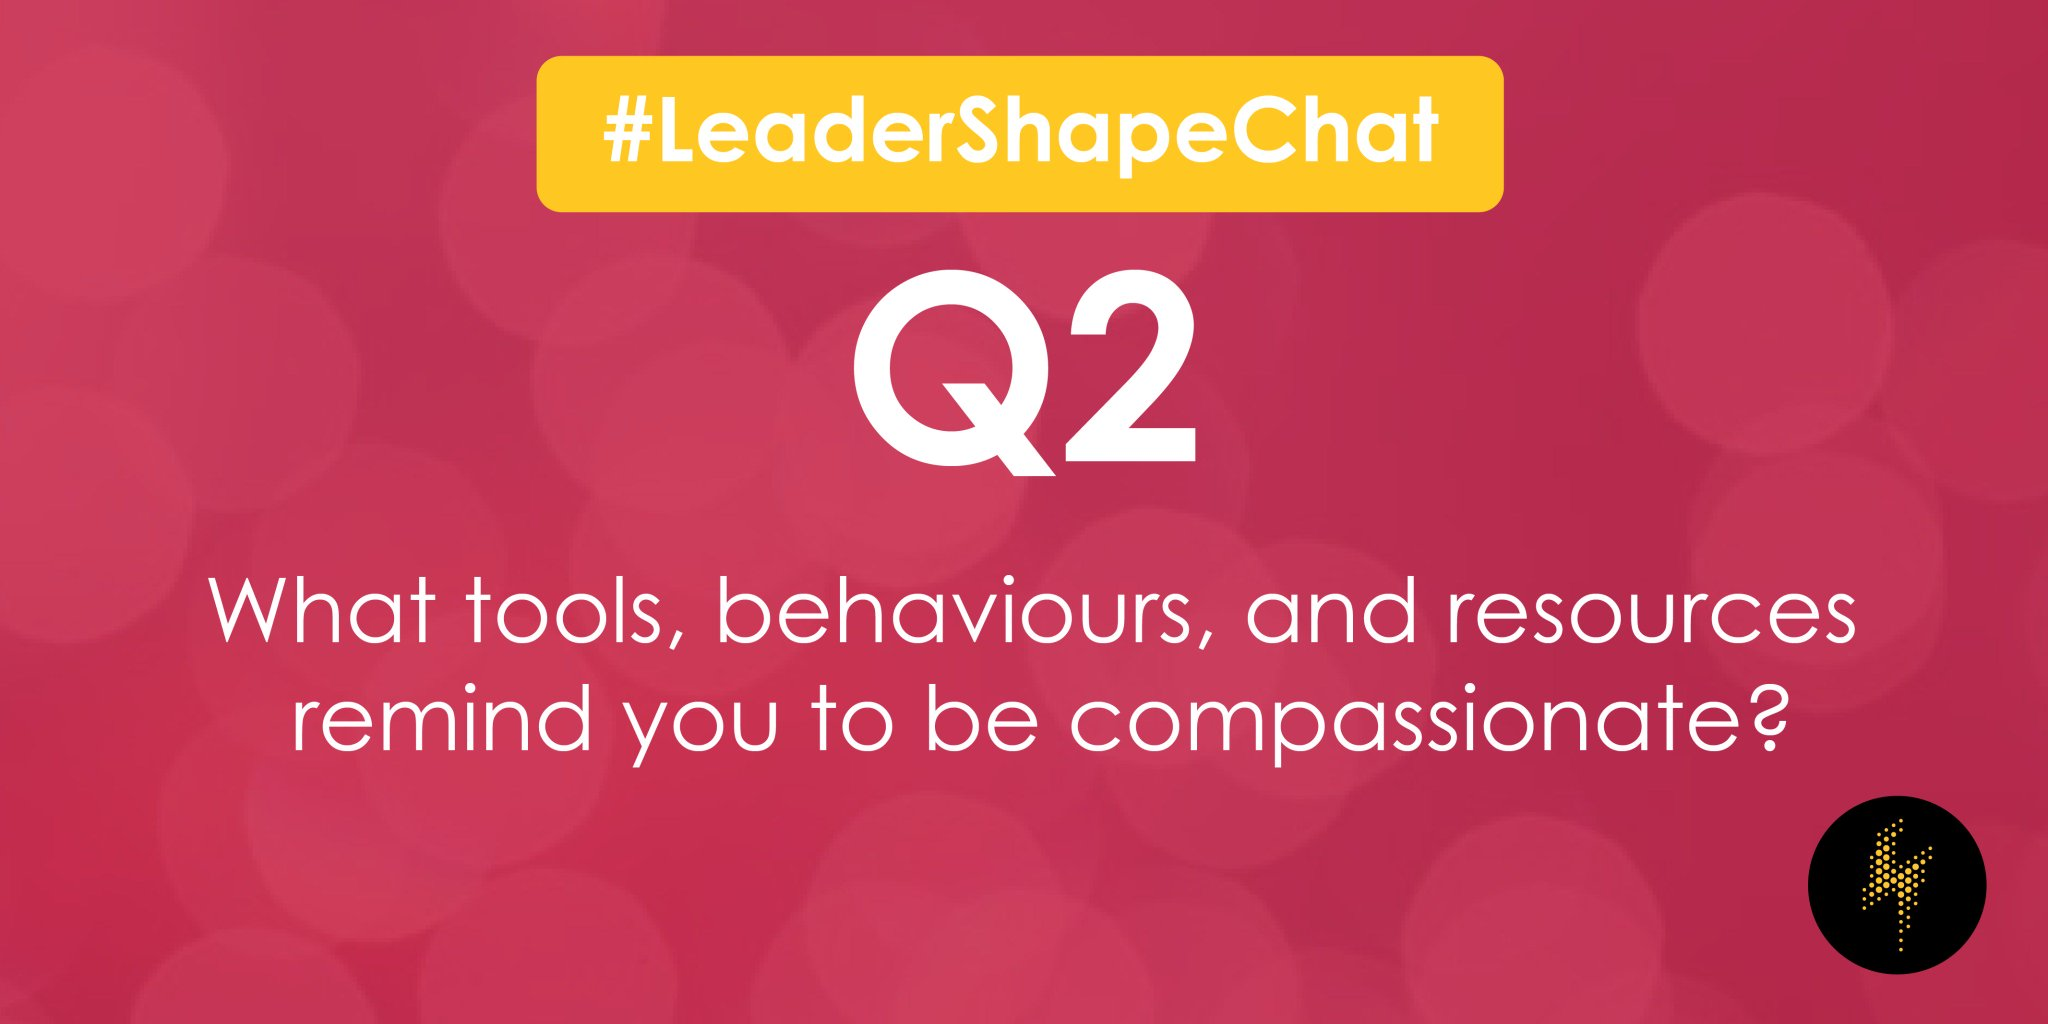 Q2: What tools, behaviours, and resources remind you to be compassionate? #LeaderShapeChat https://t.co/OjAkeI2aWv